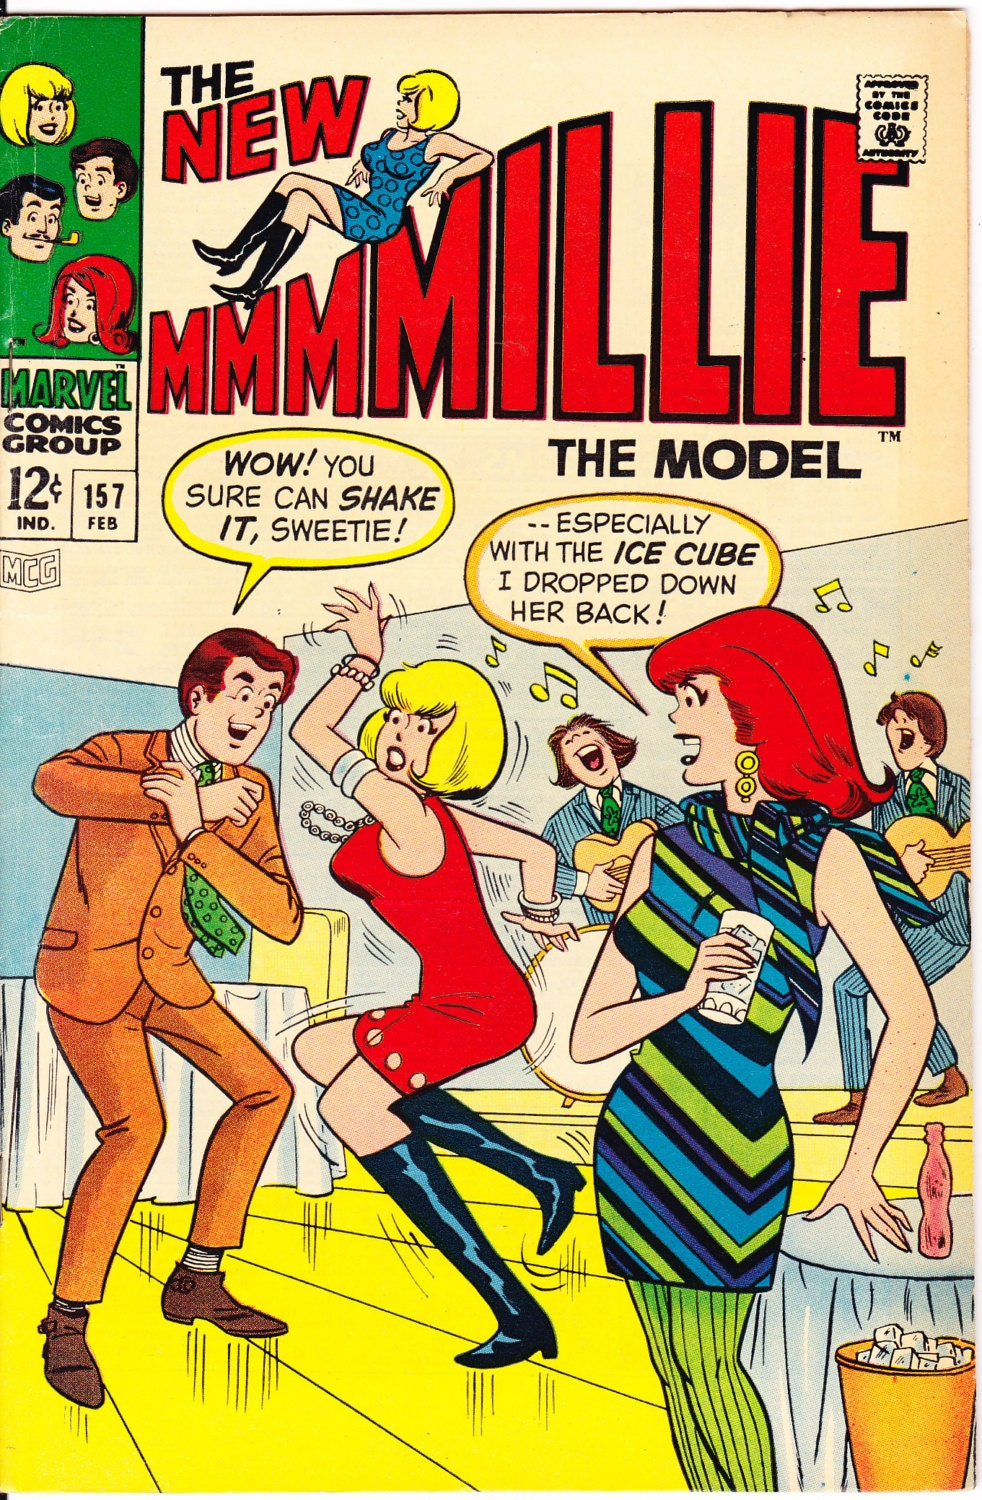 Millie the Model 157 Dancing comic Fashion book Romance